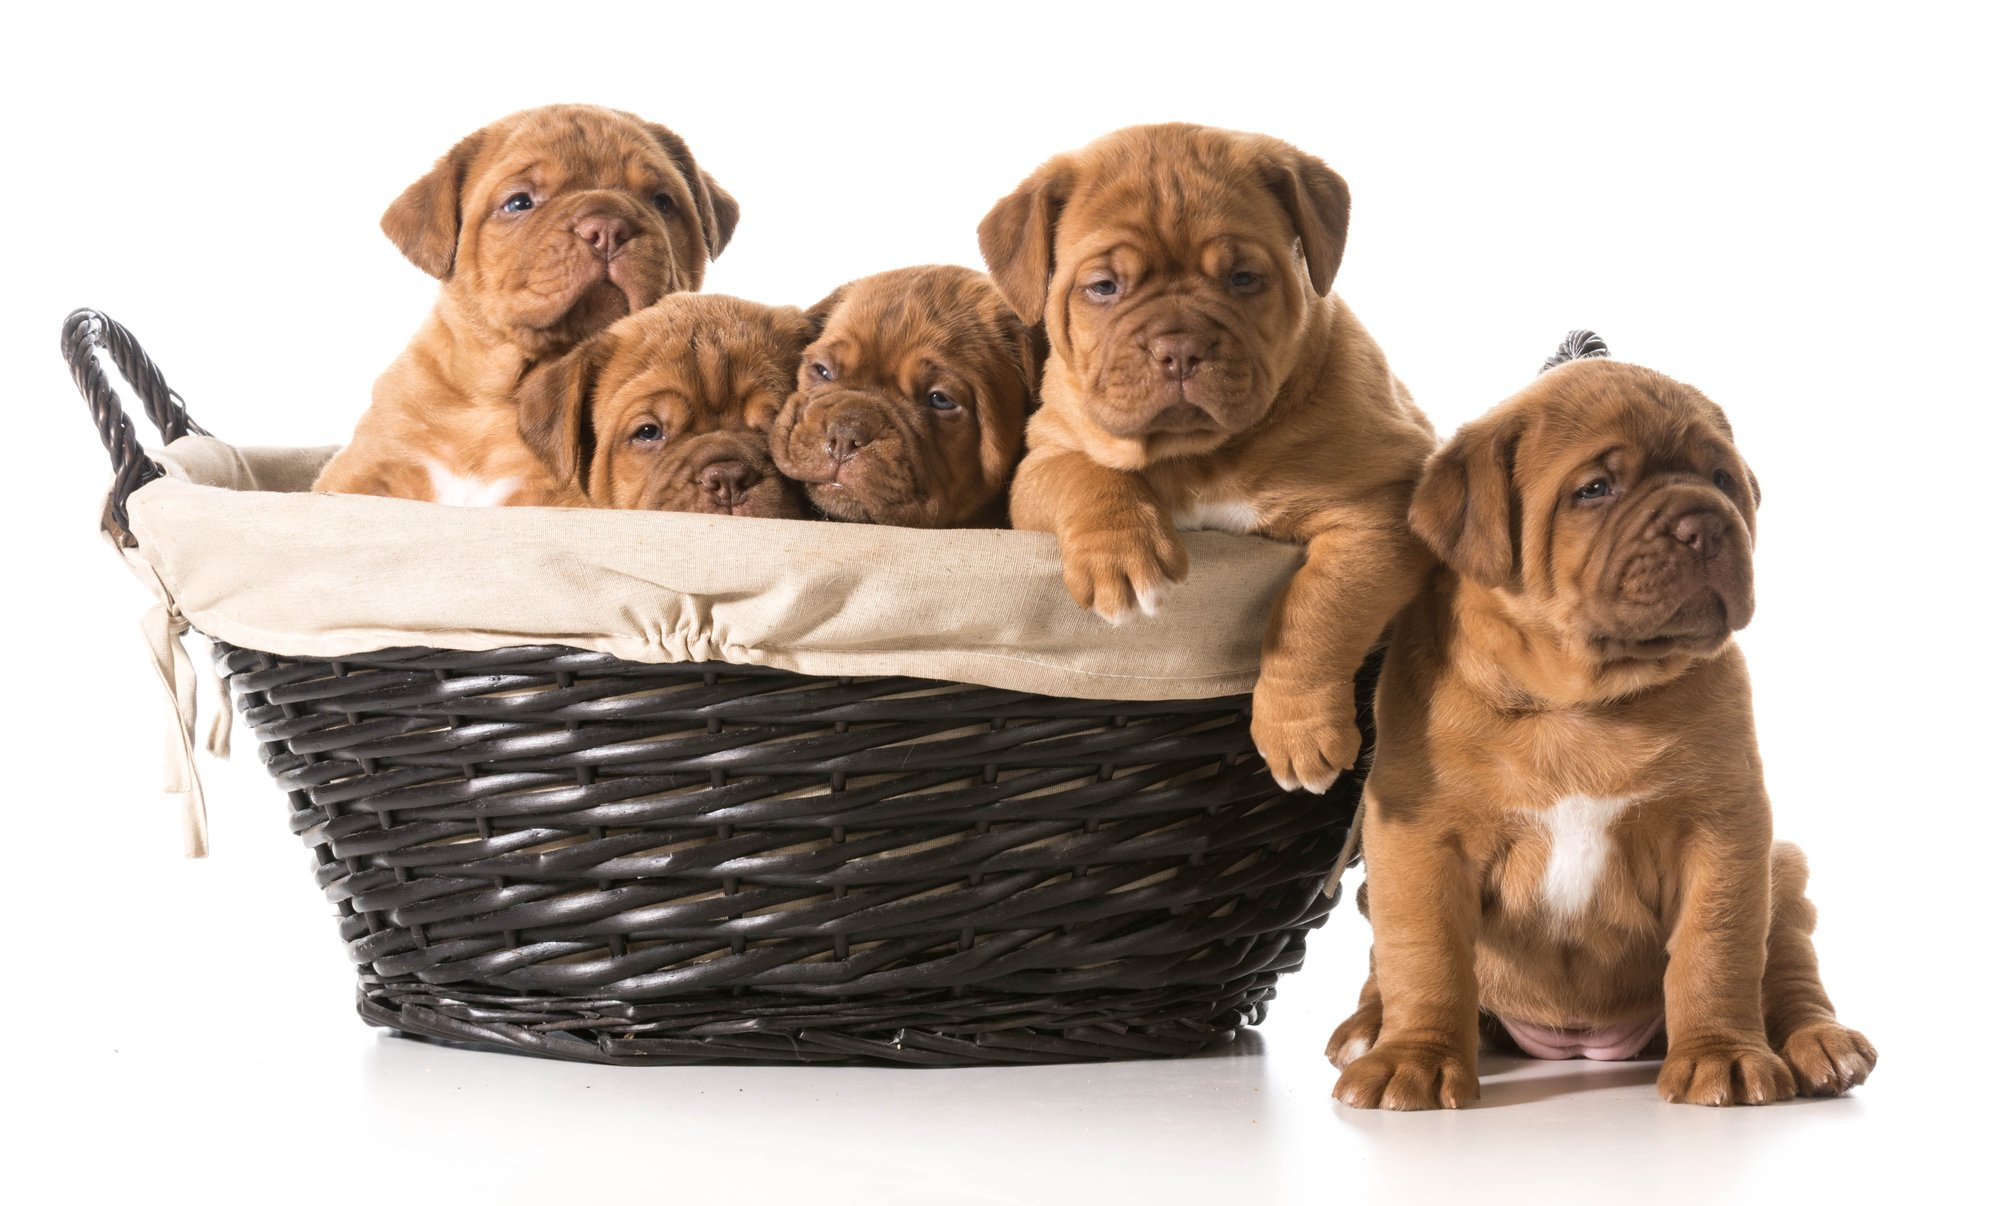 5 week old litter of five Dogue de Bordeaux puppies in a basket